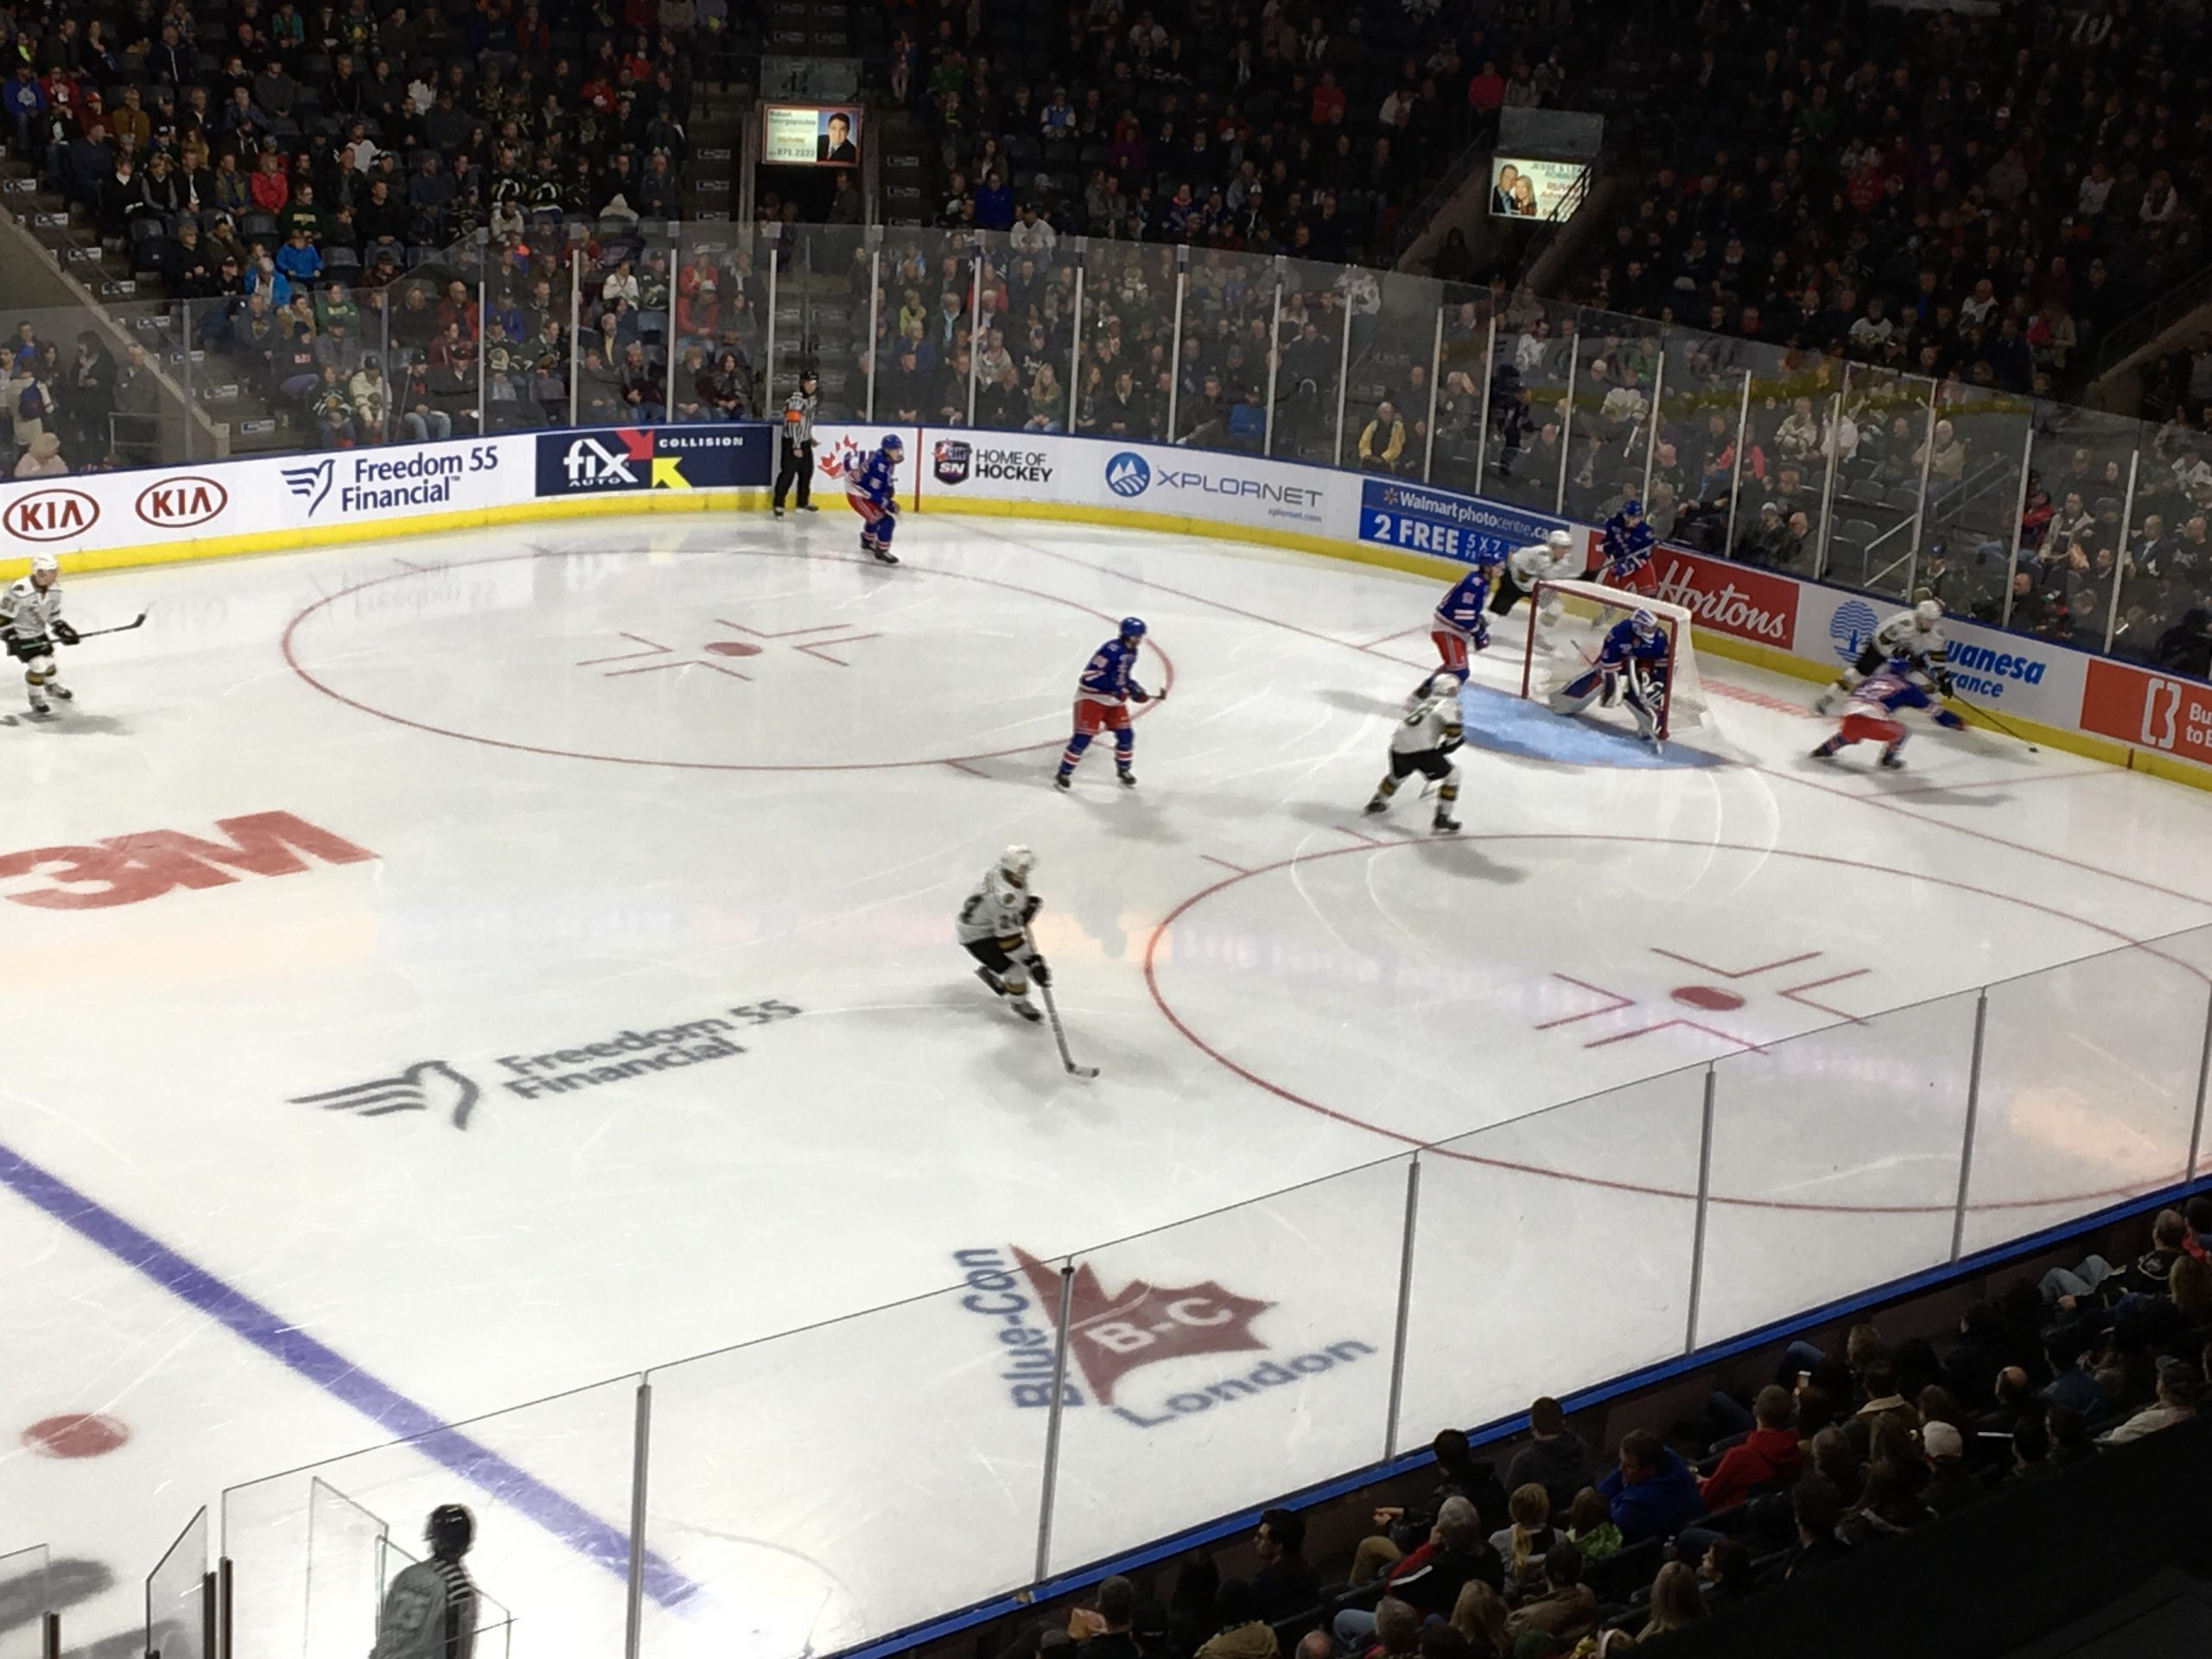 Panwar Scores His First Career OHL Goal in Win Over the Rangers